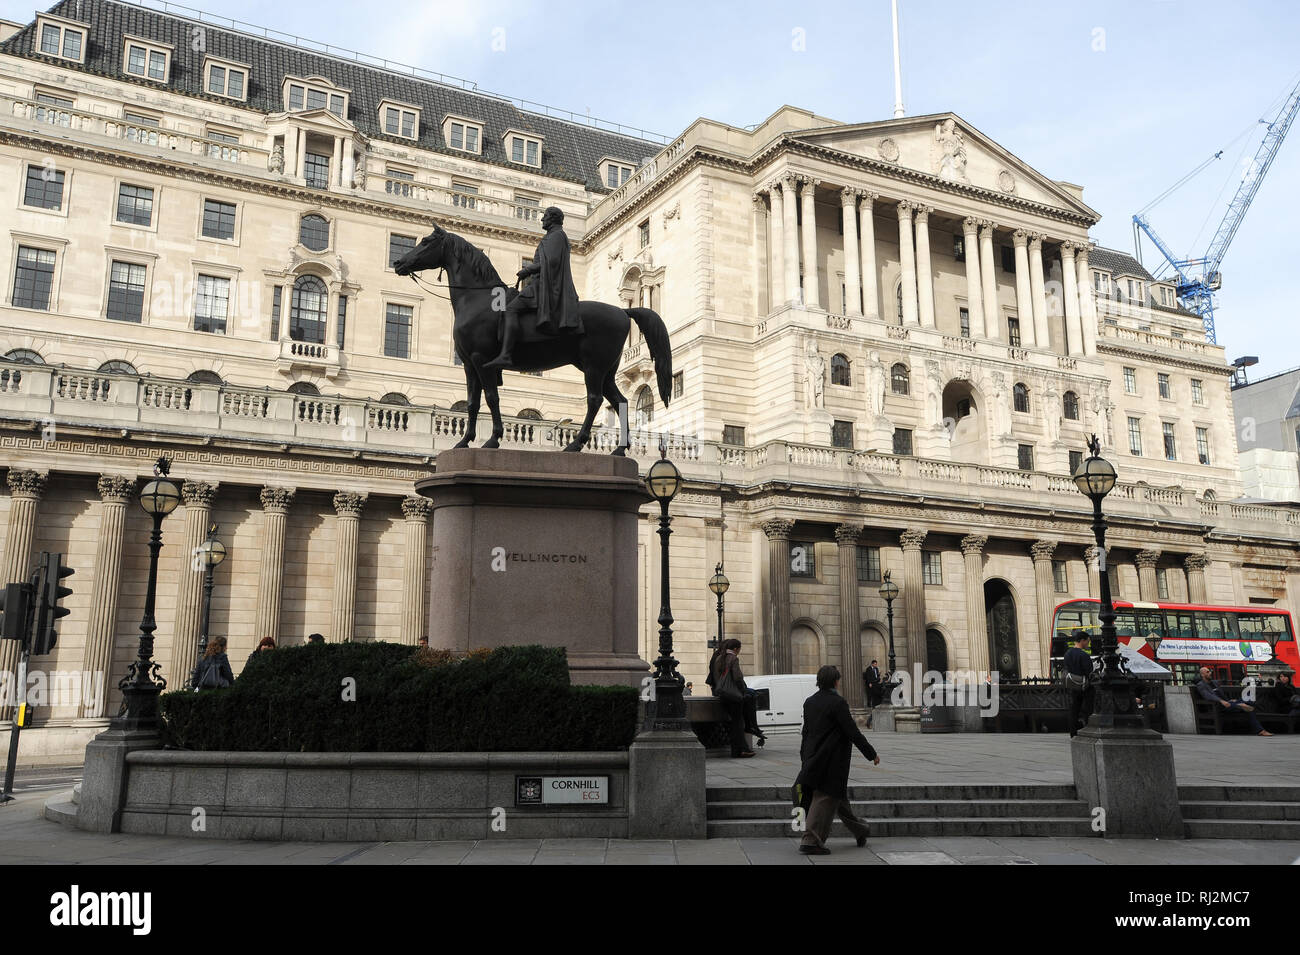 Equestrian Statue of the Duke of Wellington 1844 in front of Bank of England in City of London, London, England, United Kingdom. October 24th 2008 © W - Stock Image